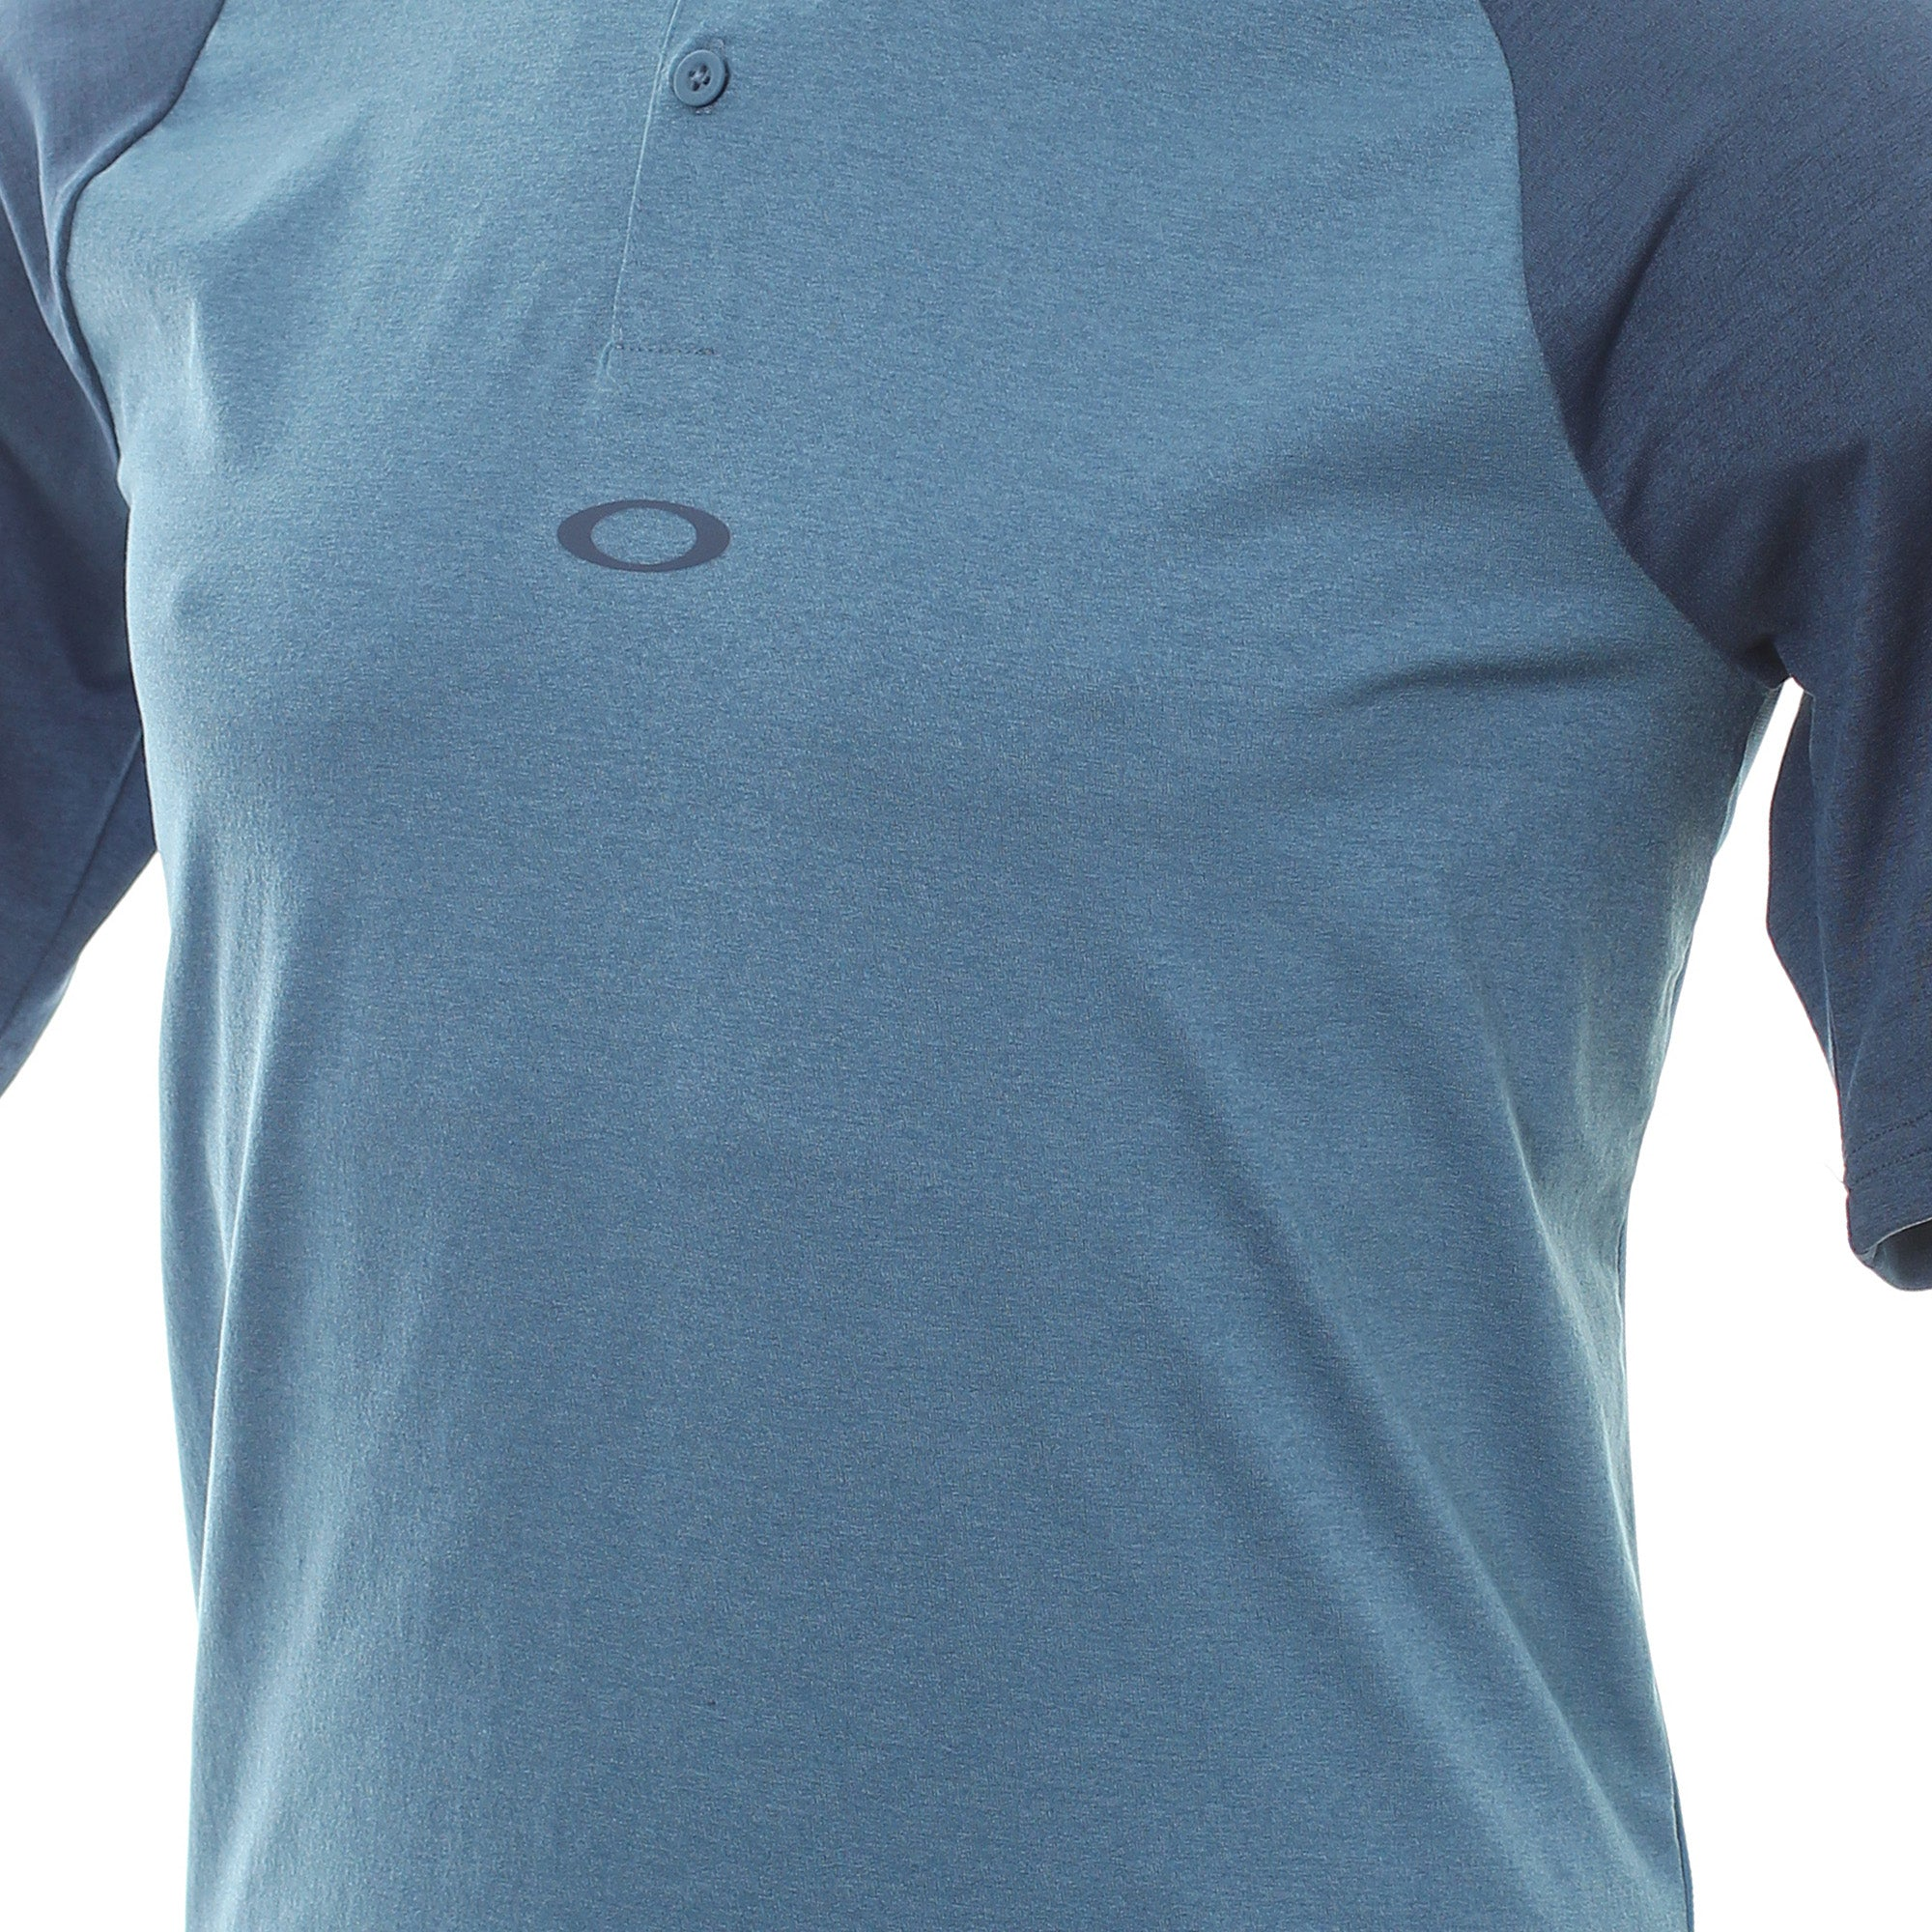 Oakley Golf Icon Bi Colour Shirt